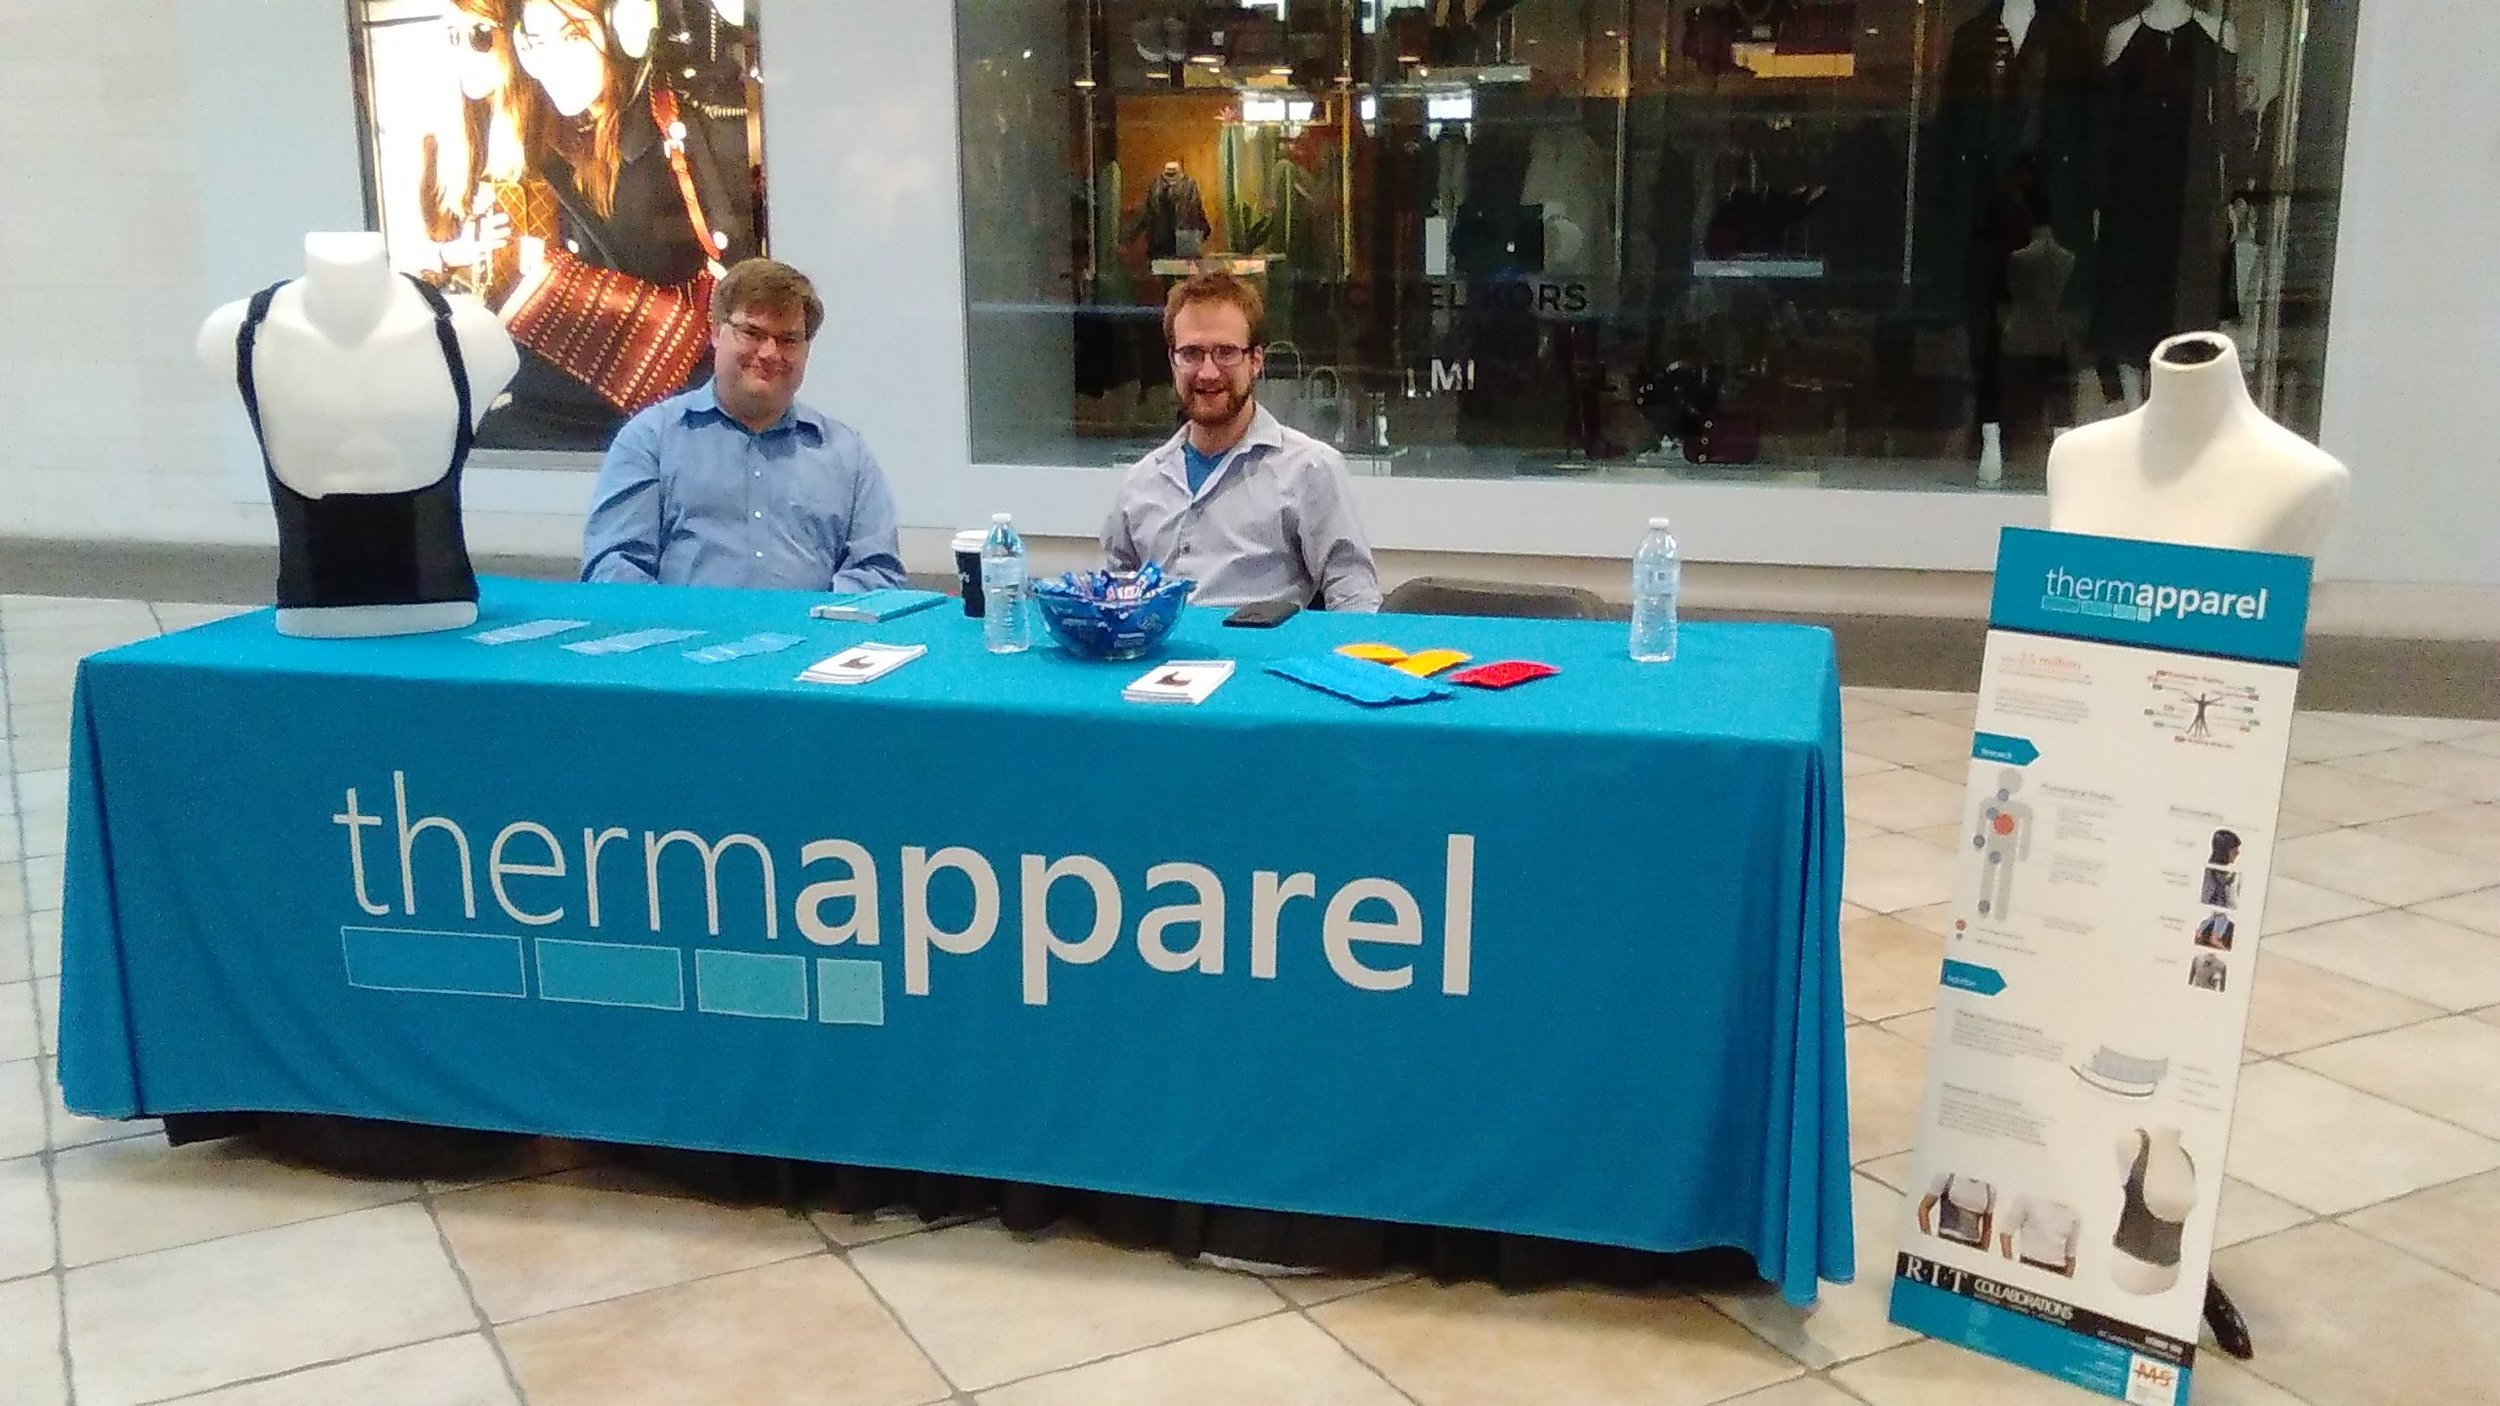 Kurtis Kracke (left) and Brad Dunn (right), tired but present at the Thermapparel table for WalkAbout.